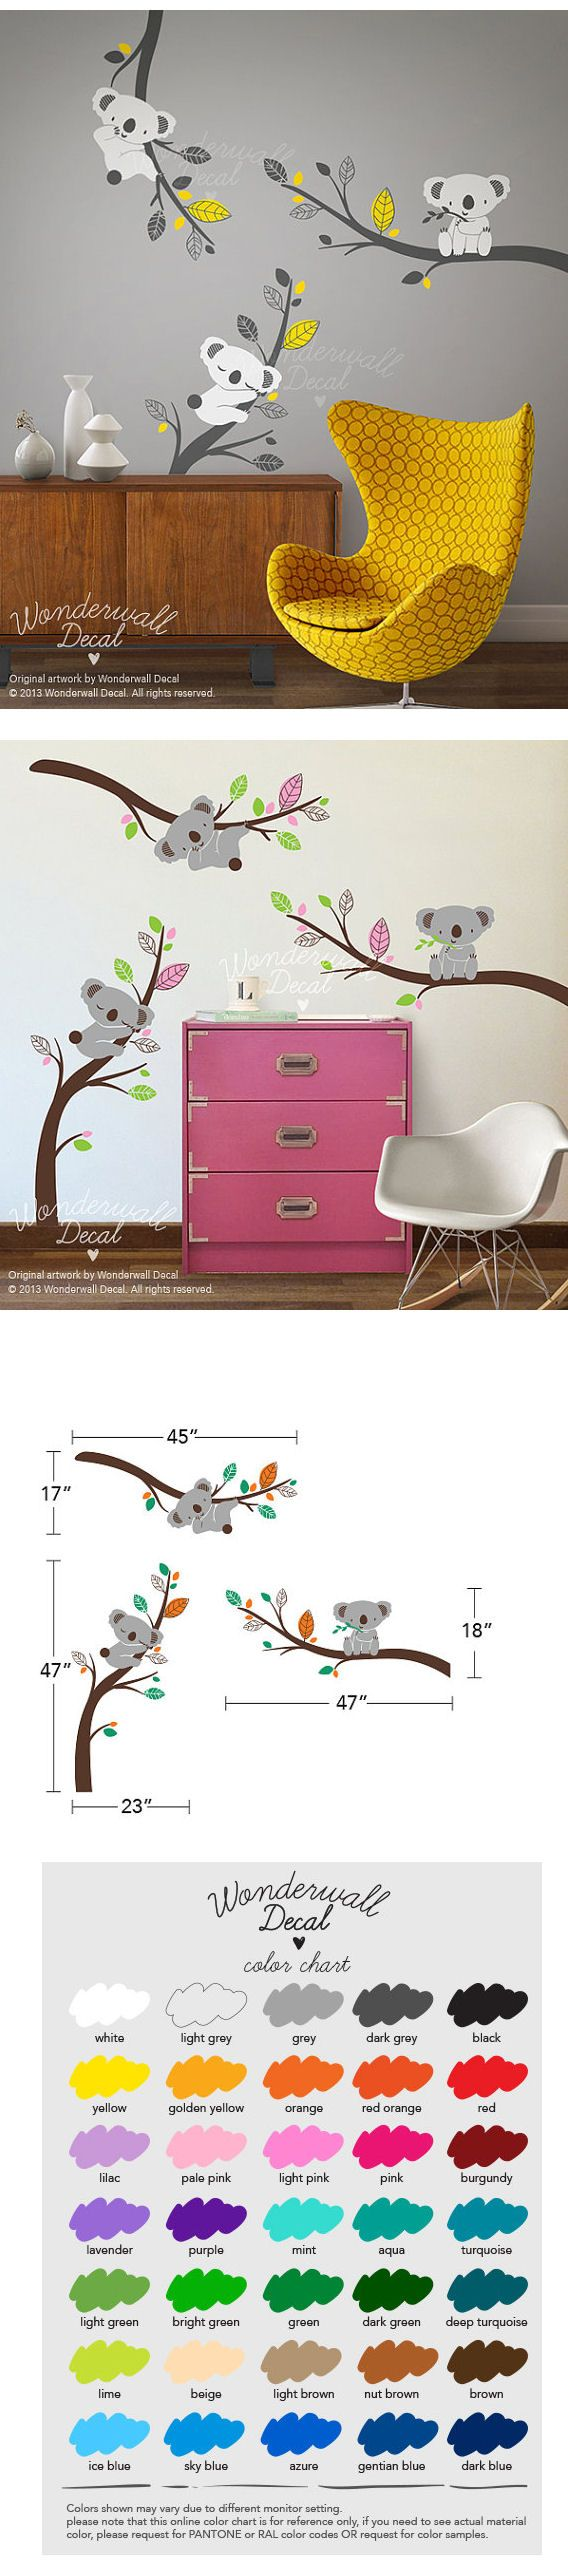 All colors customizable. $88. http://www.wallstickeroutlet.com/wall-decor-detail.php?RecordID=540932